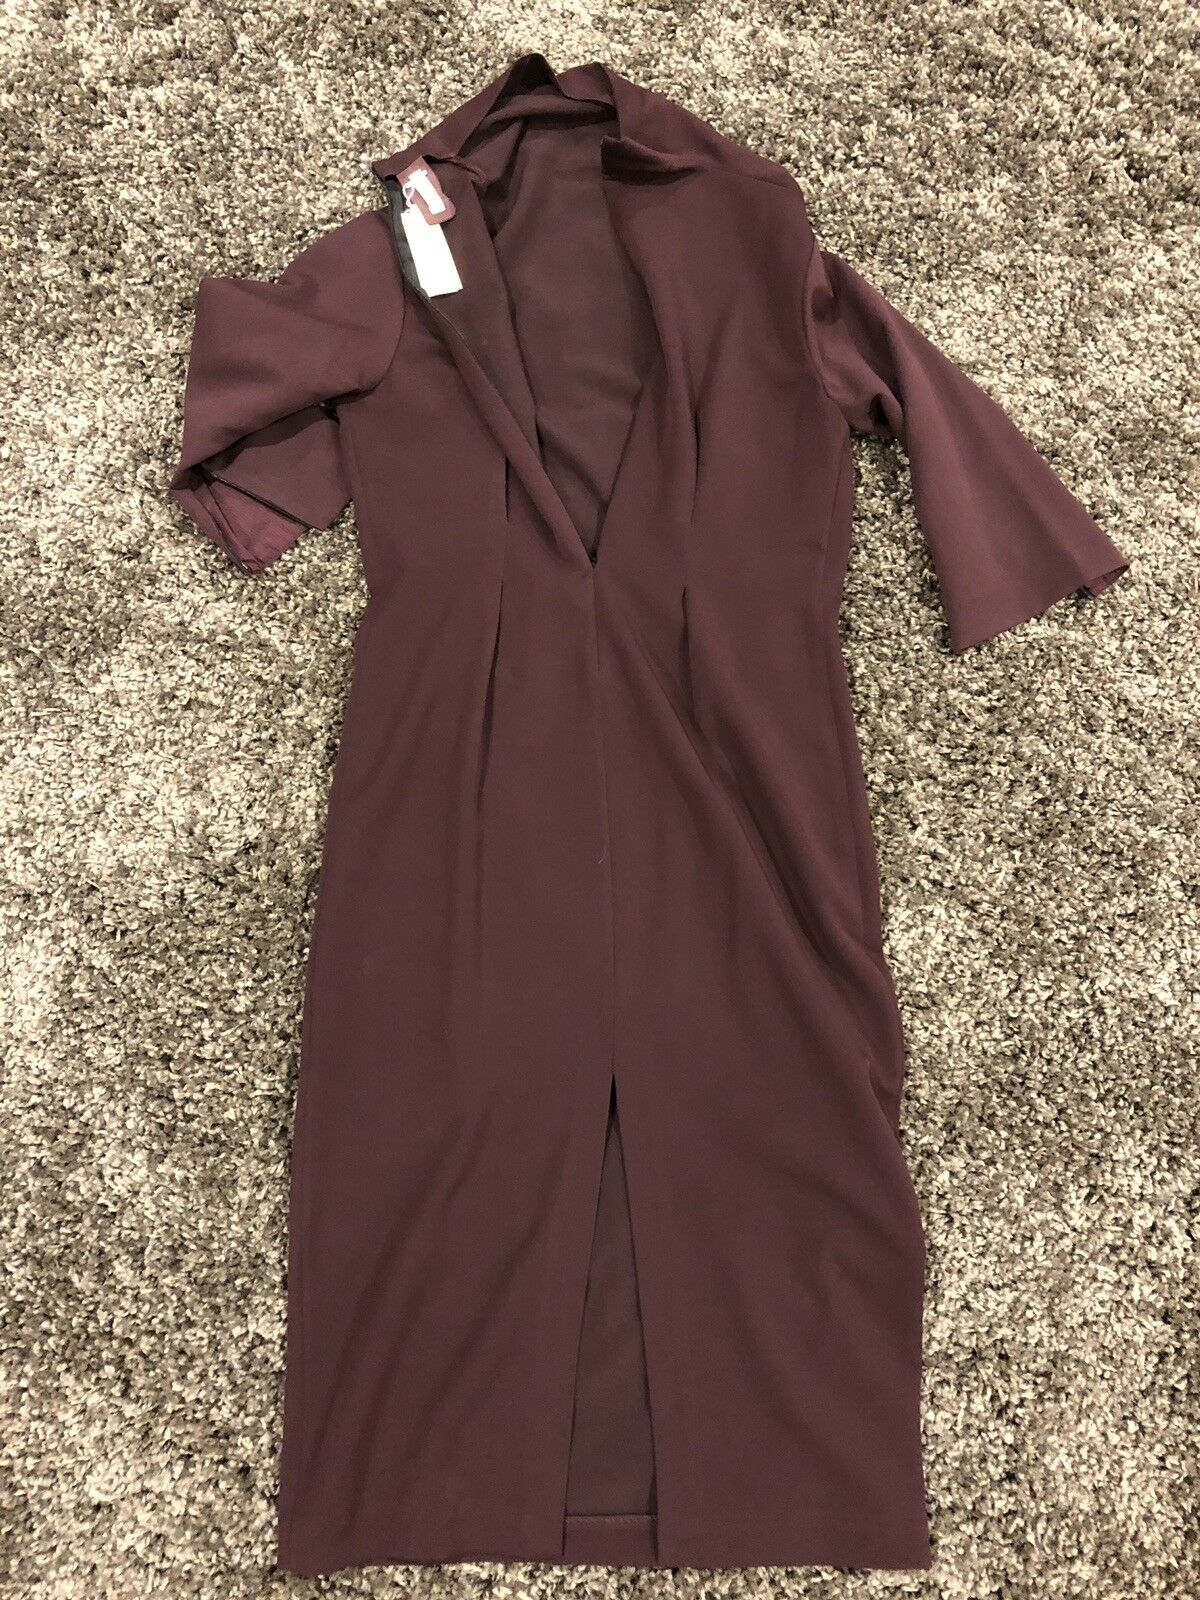 DUSICA KOTUR FITTED WOMENS WOMENS WOMENS GABARDINE  DRESS ,SIZE M ,NWT 222ad4